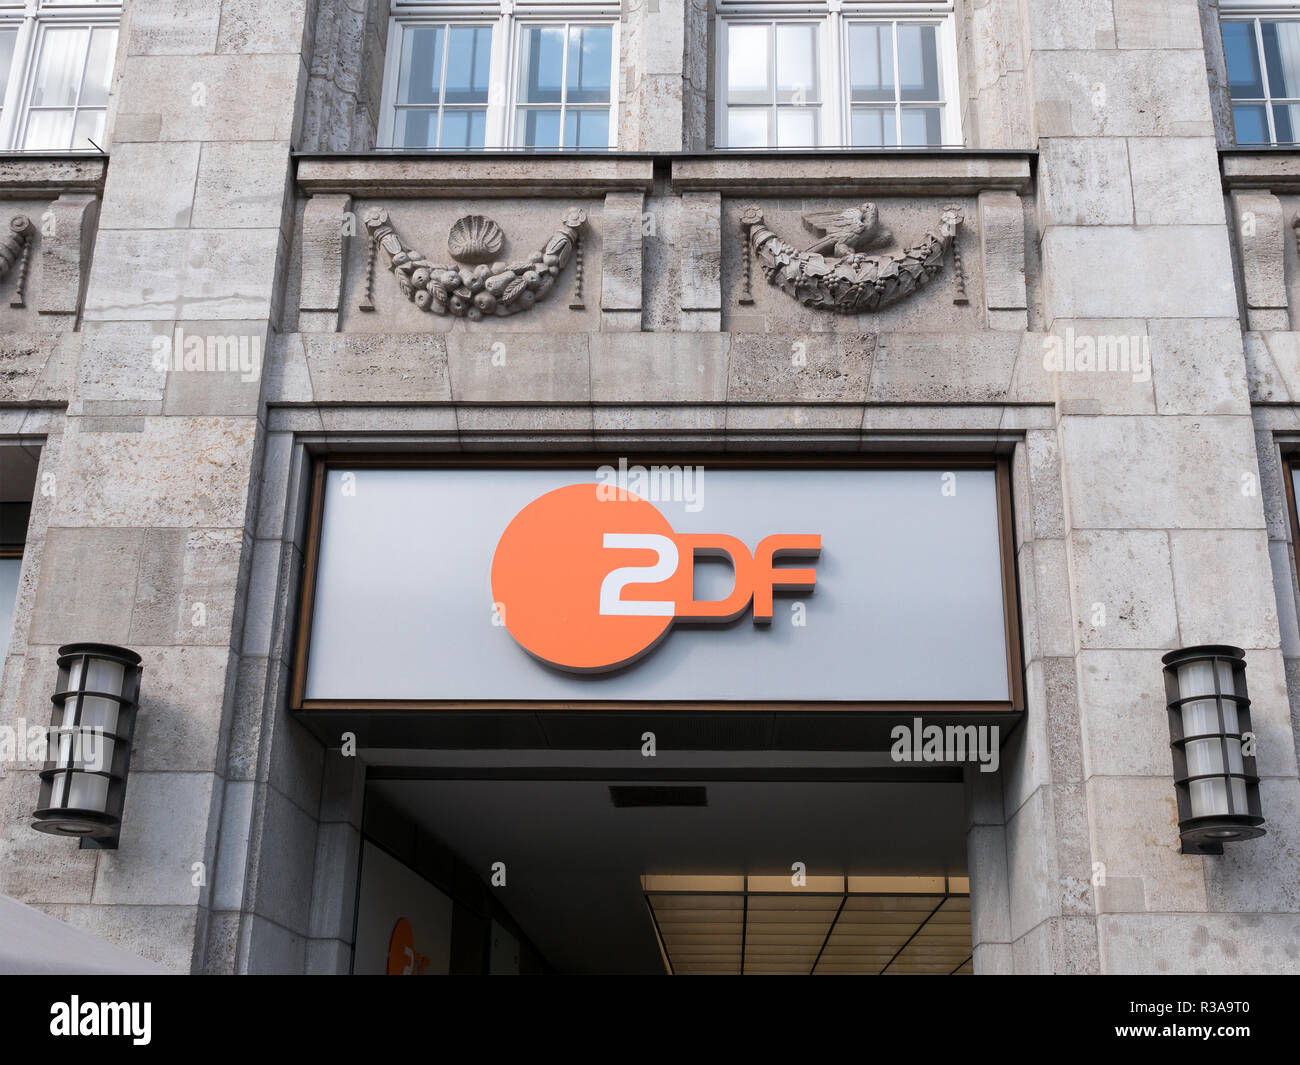 BERLIN, GERMANY - APRIL 3, 2018: ZDF Symbol At The Capital Studio In Berlin, Zweites Deutsches Fernsehen, German For Second German Television , Usually Shortened To ZDF - Stock Image